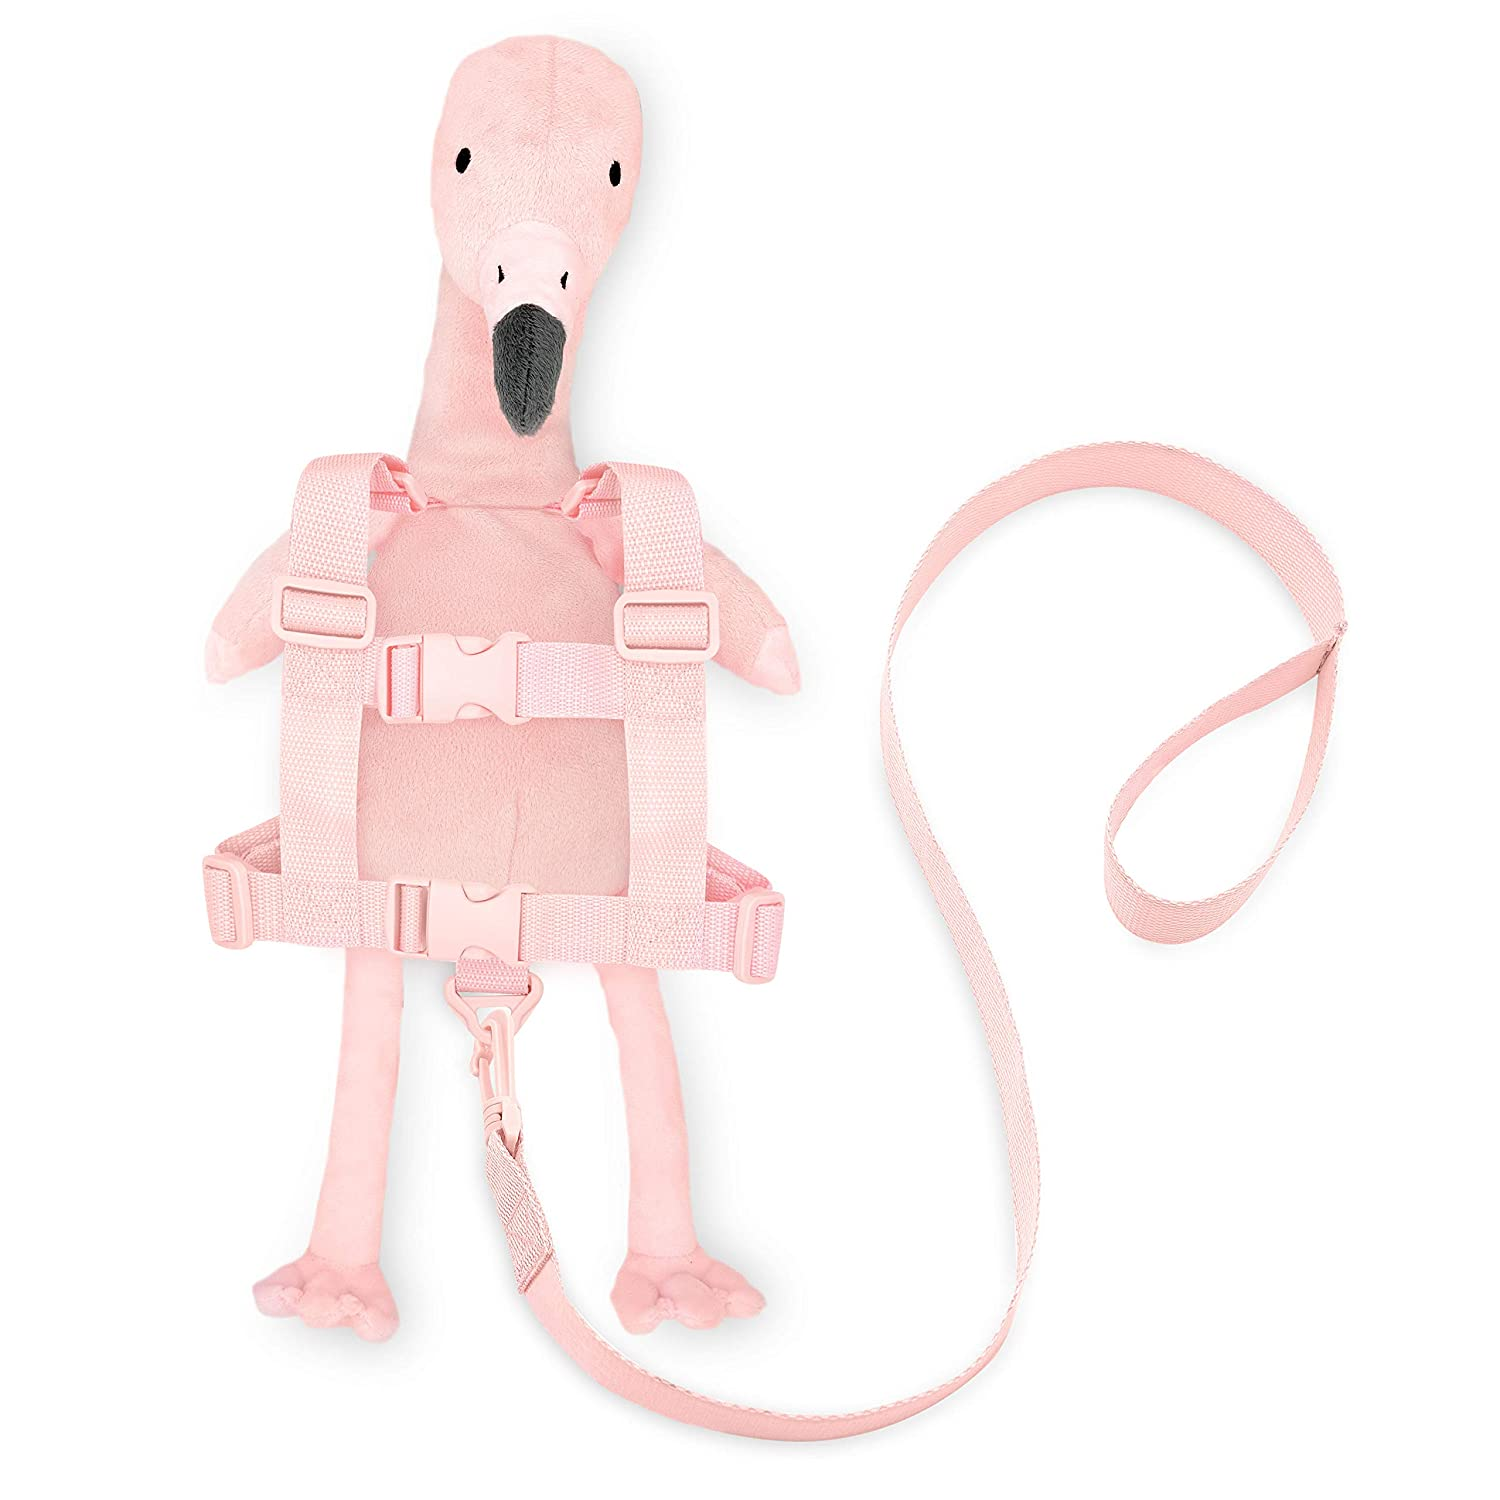 Travel Bug Toddler Character 2-in-1 Safety Harness - Flamingo